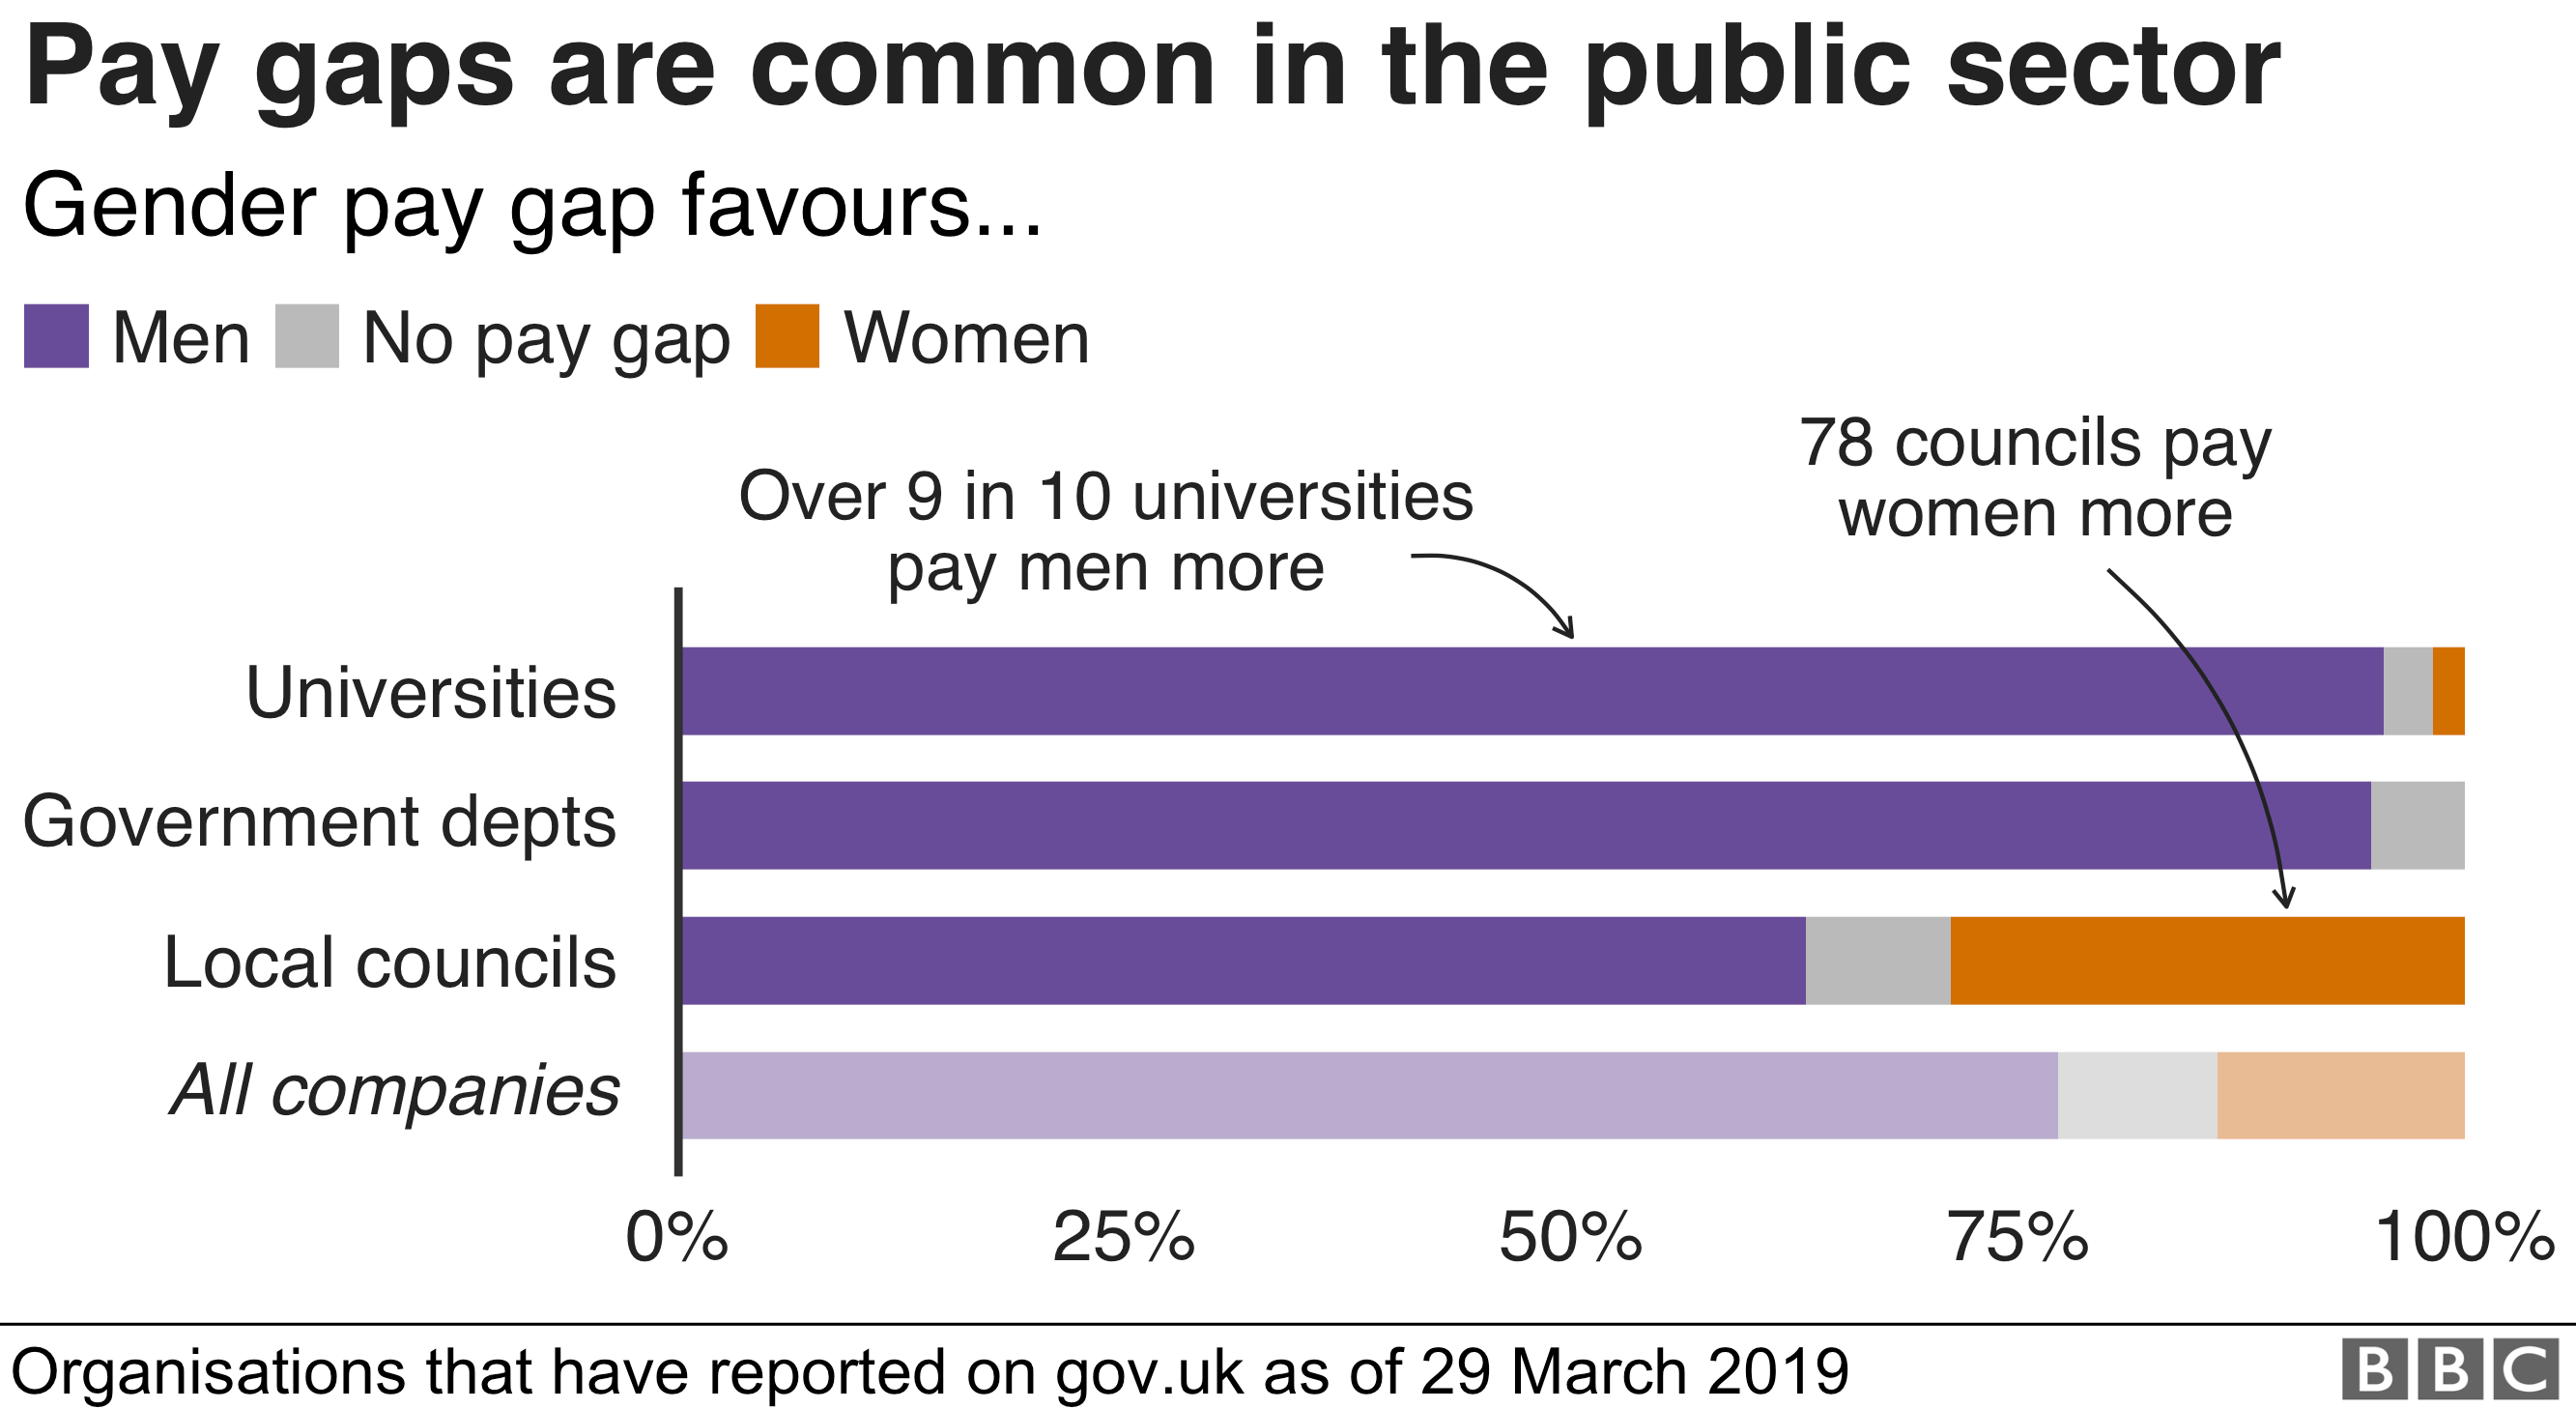 Chart showing that many public sector bodies pay men more than women